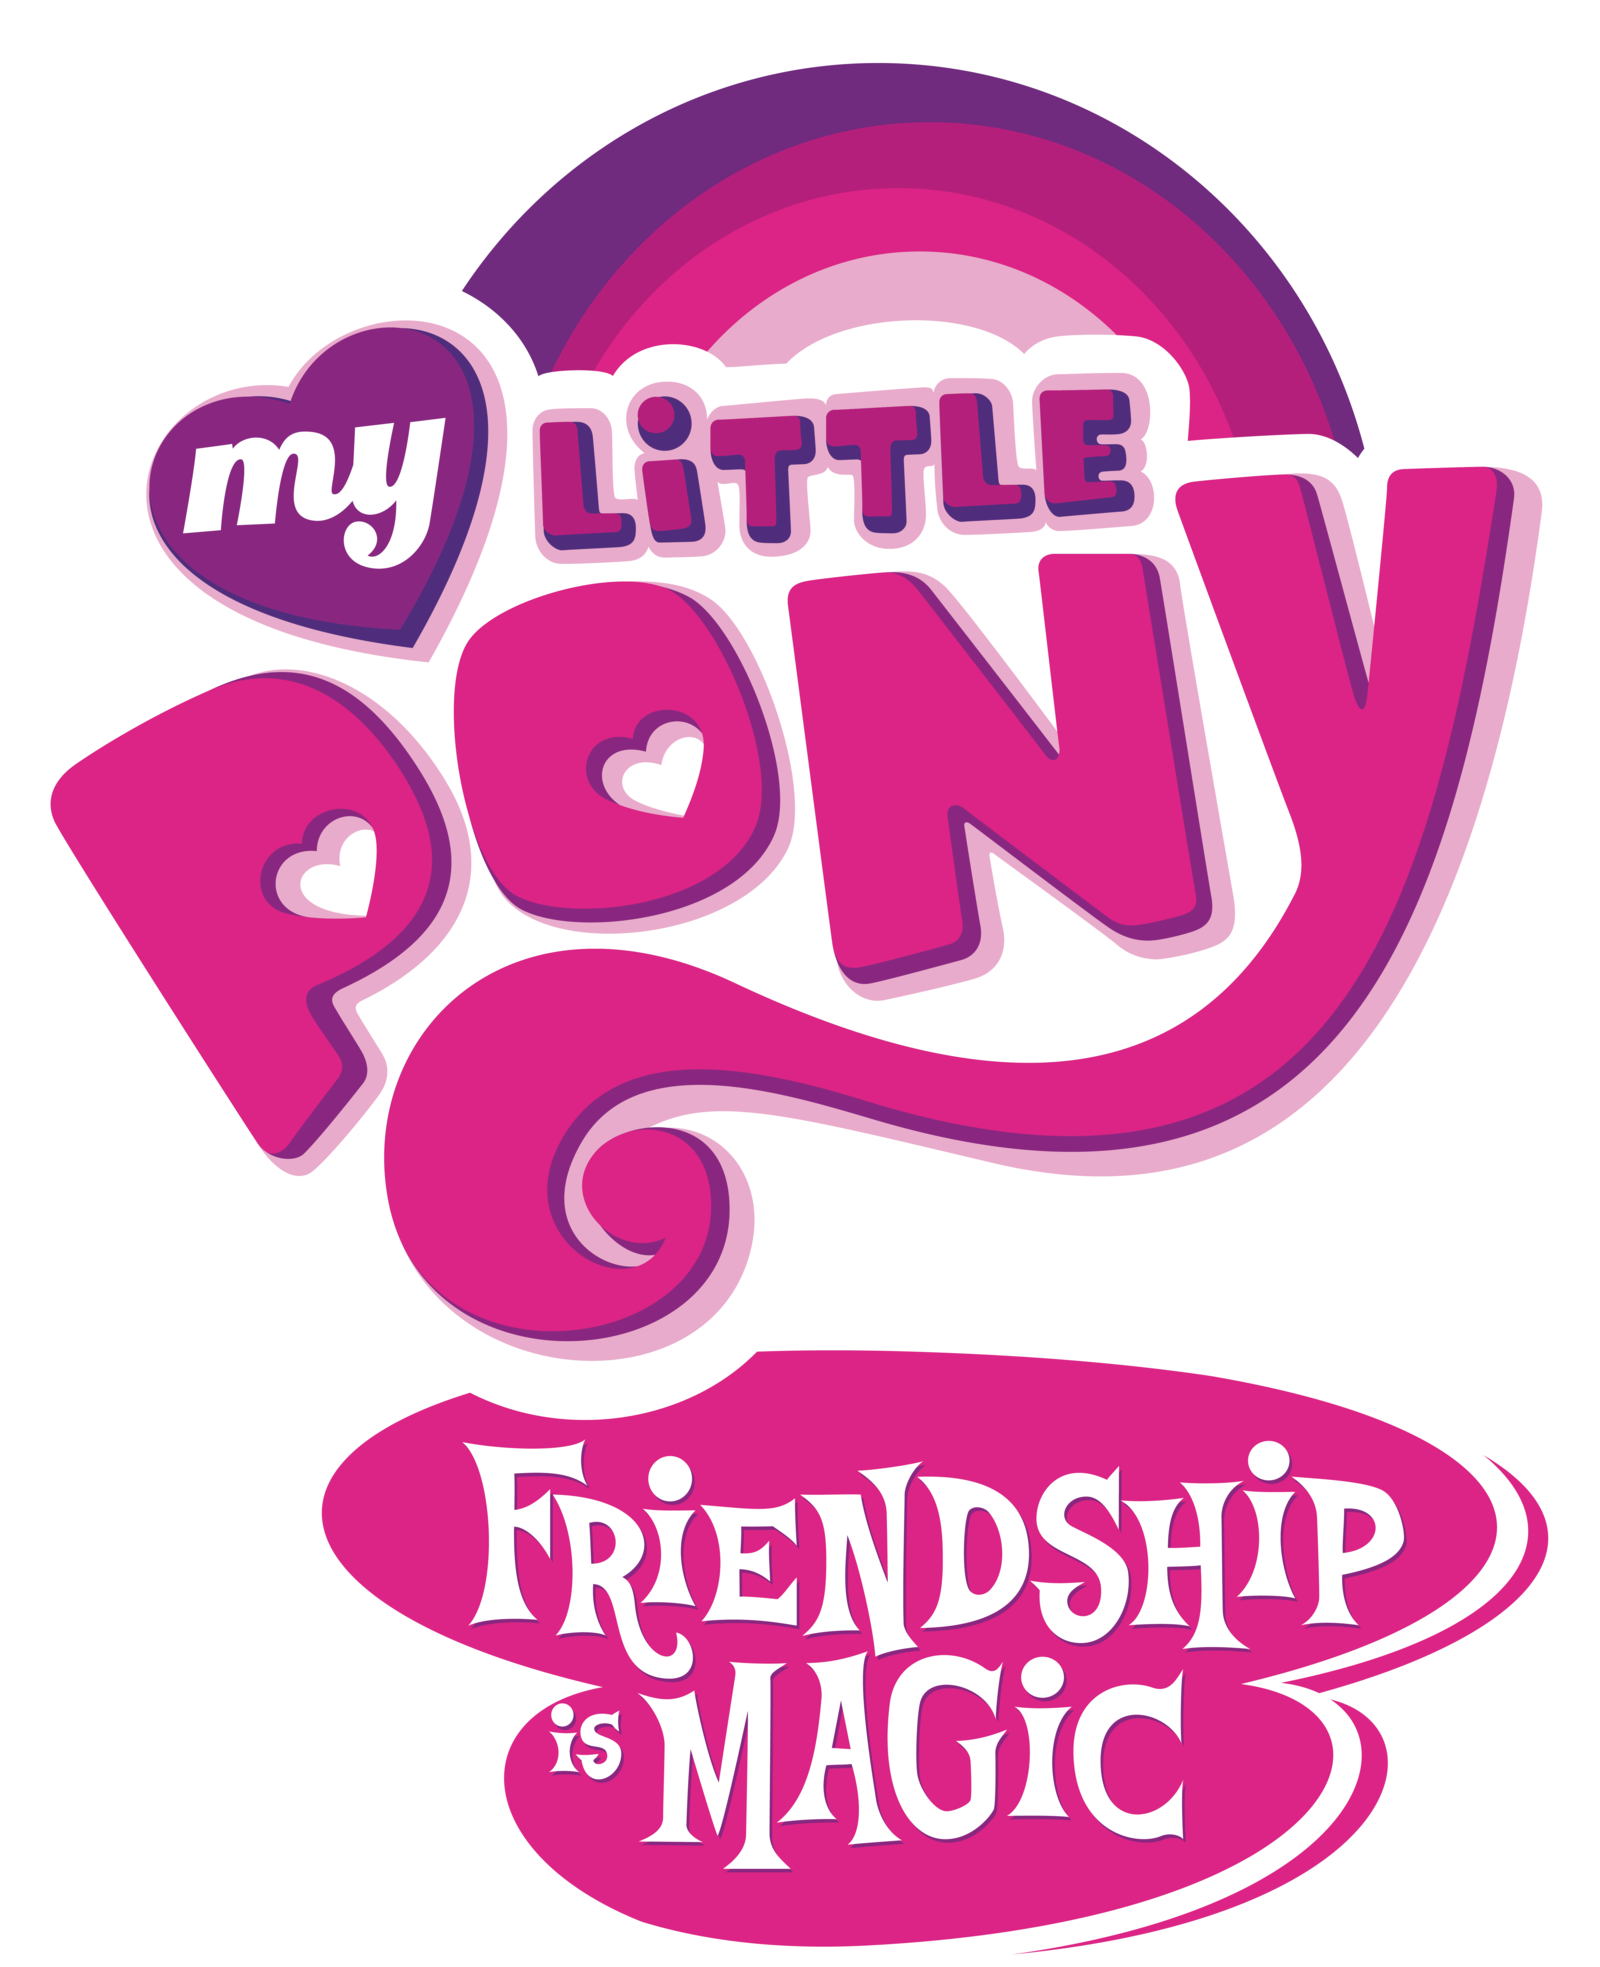 My Little Pony- Official Club!